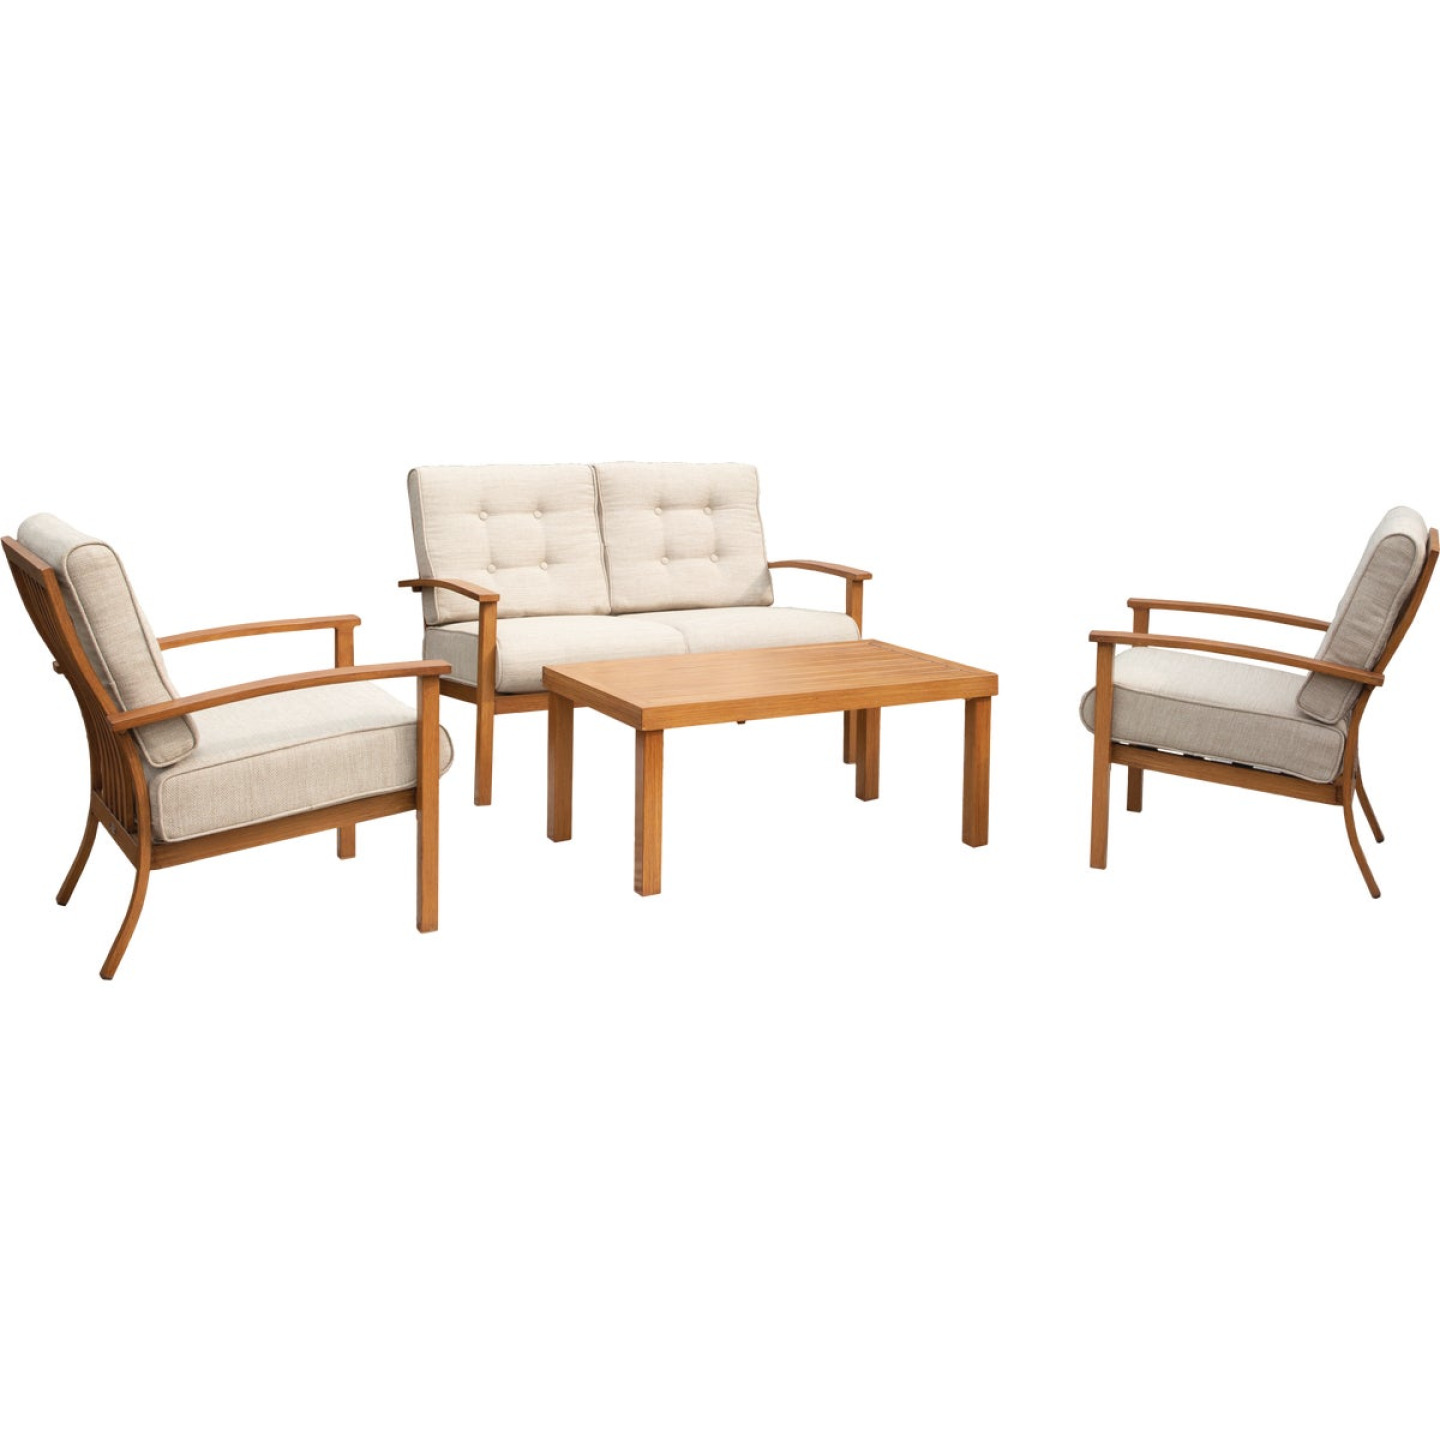 Leisure Classics Beaufort 4-Piece Chat Set Image 1